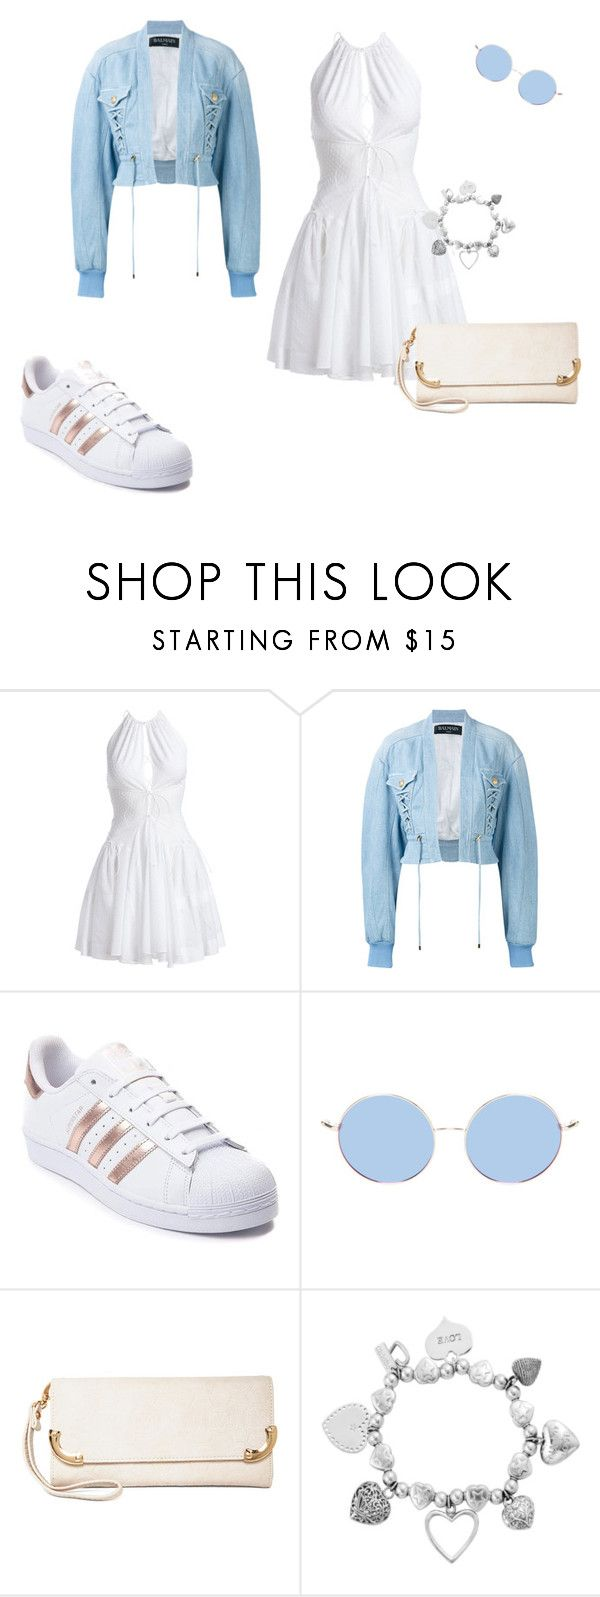 """summer"" by heddastoltnielsen on Polyvore featuring Alaïa, Balmain, adidas, MKF Collection and ChloBo"